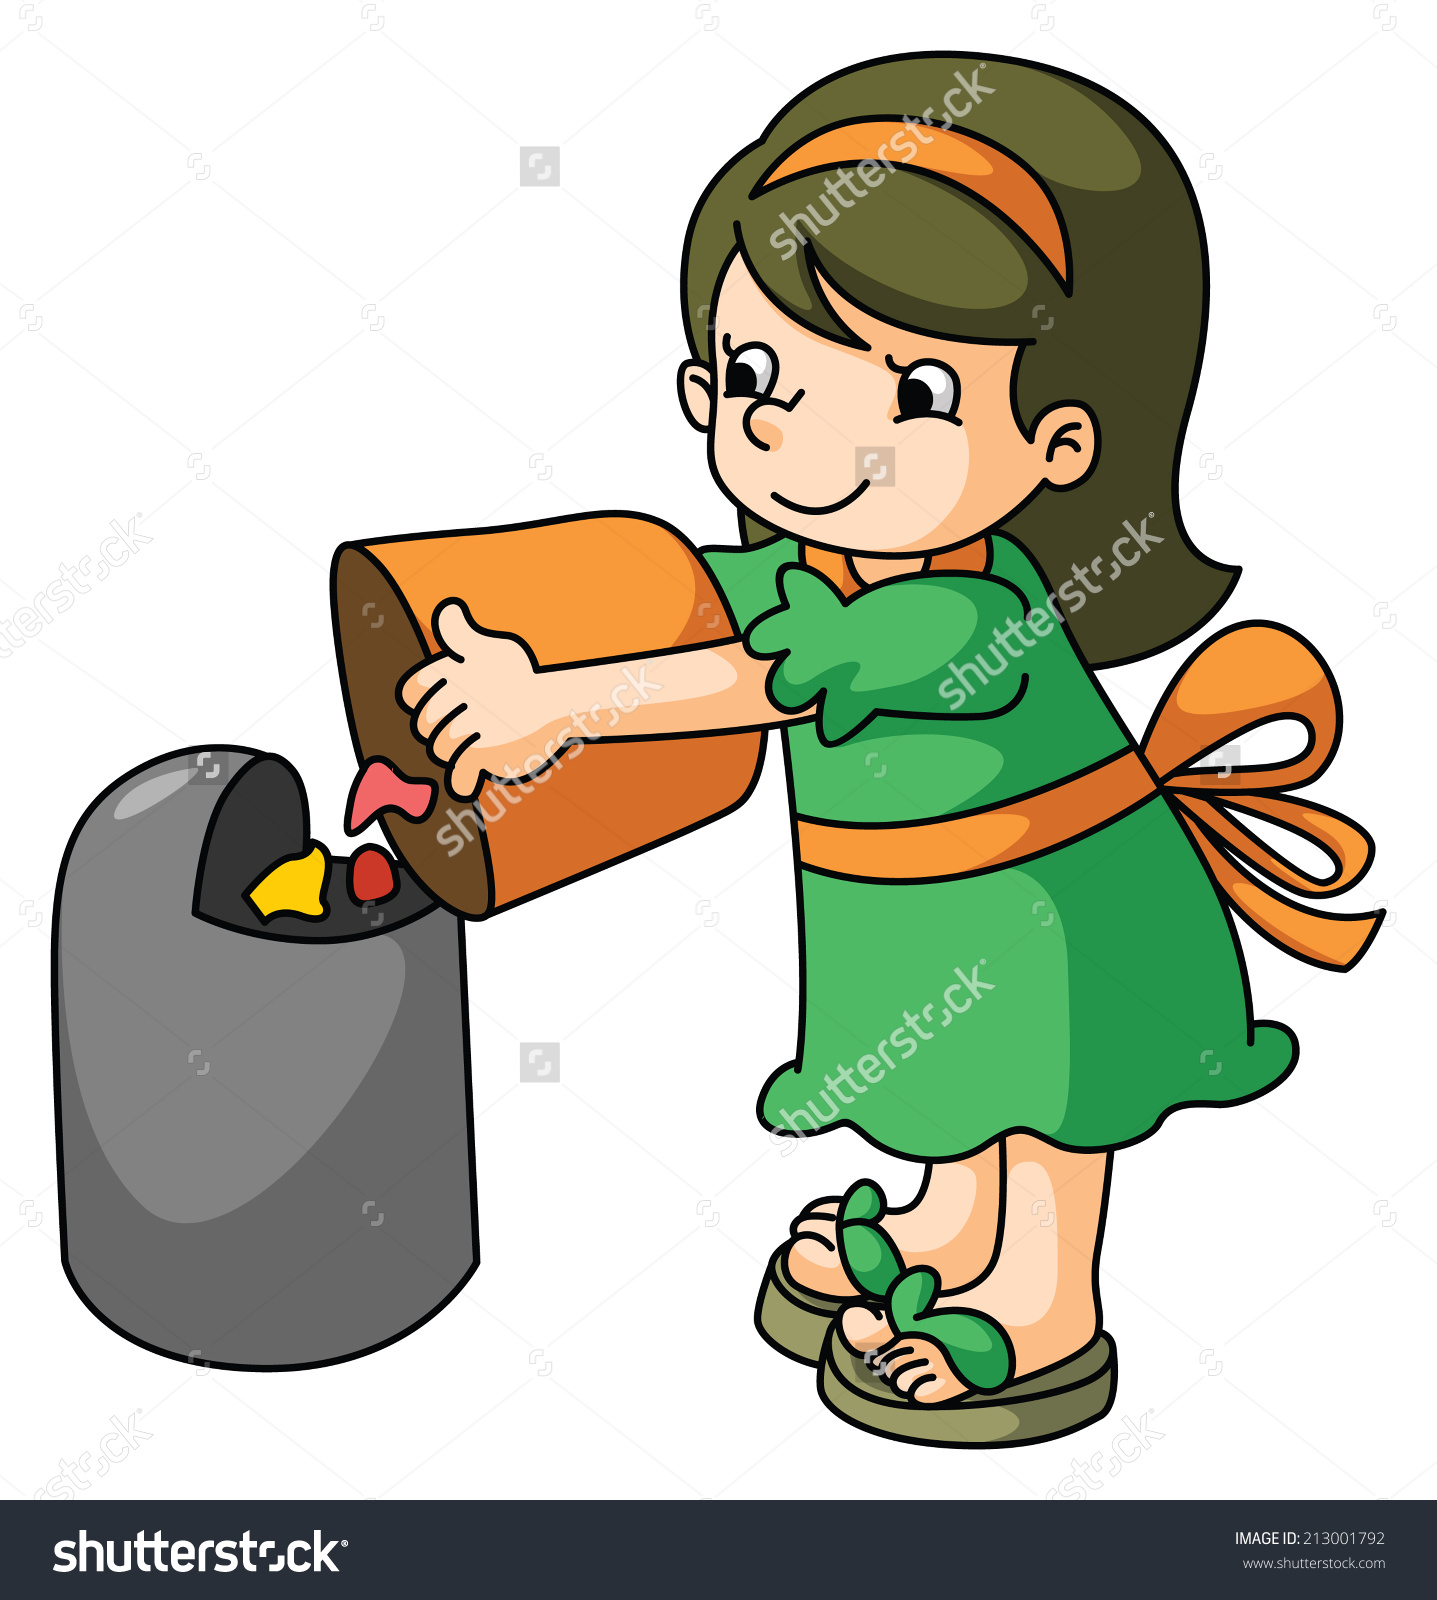 Throwing garbage clipart.